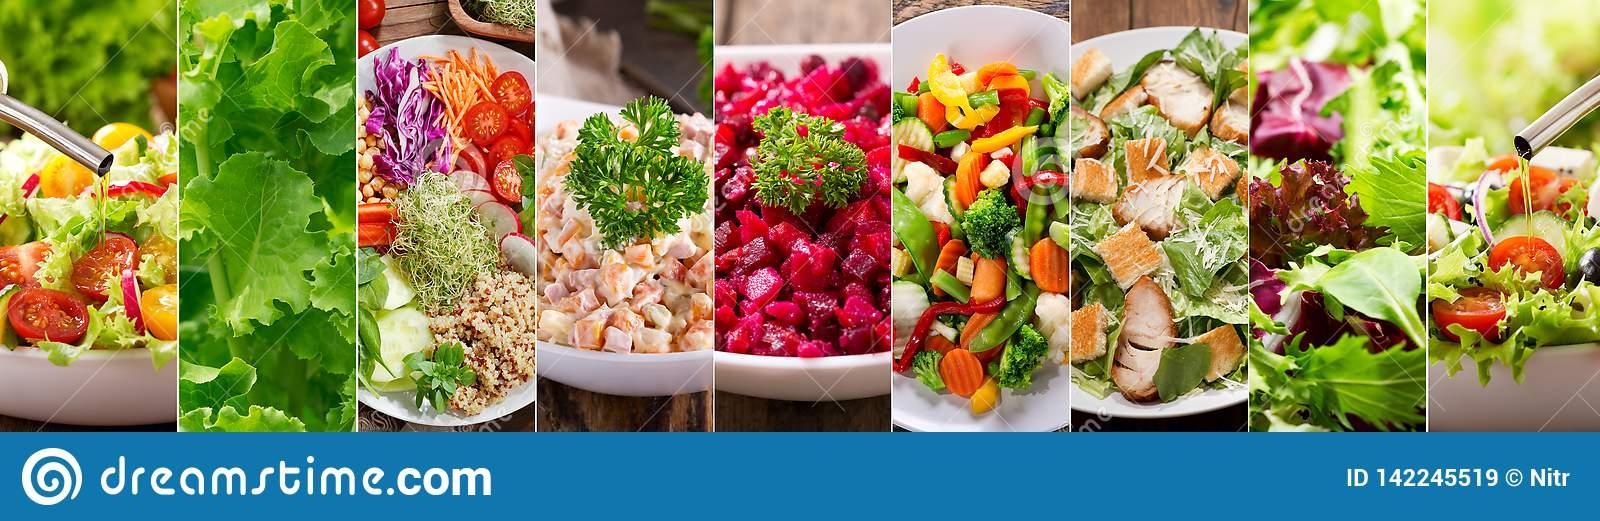 Collage of various types plates of salad